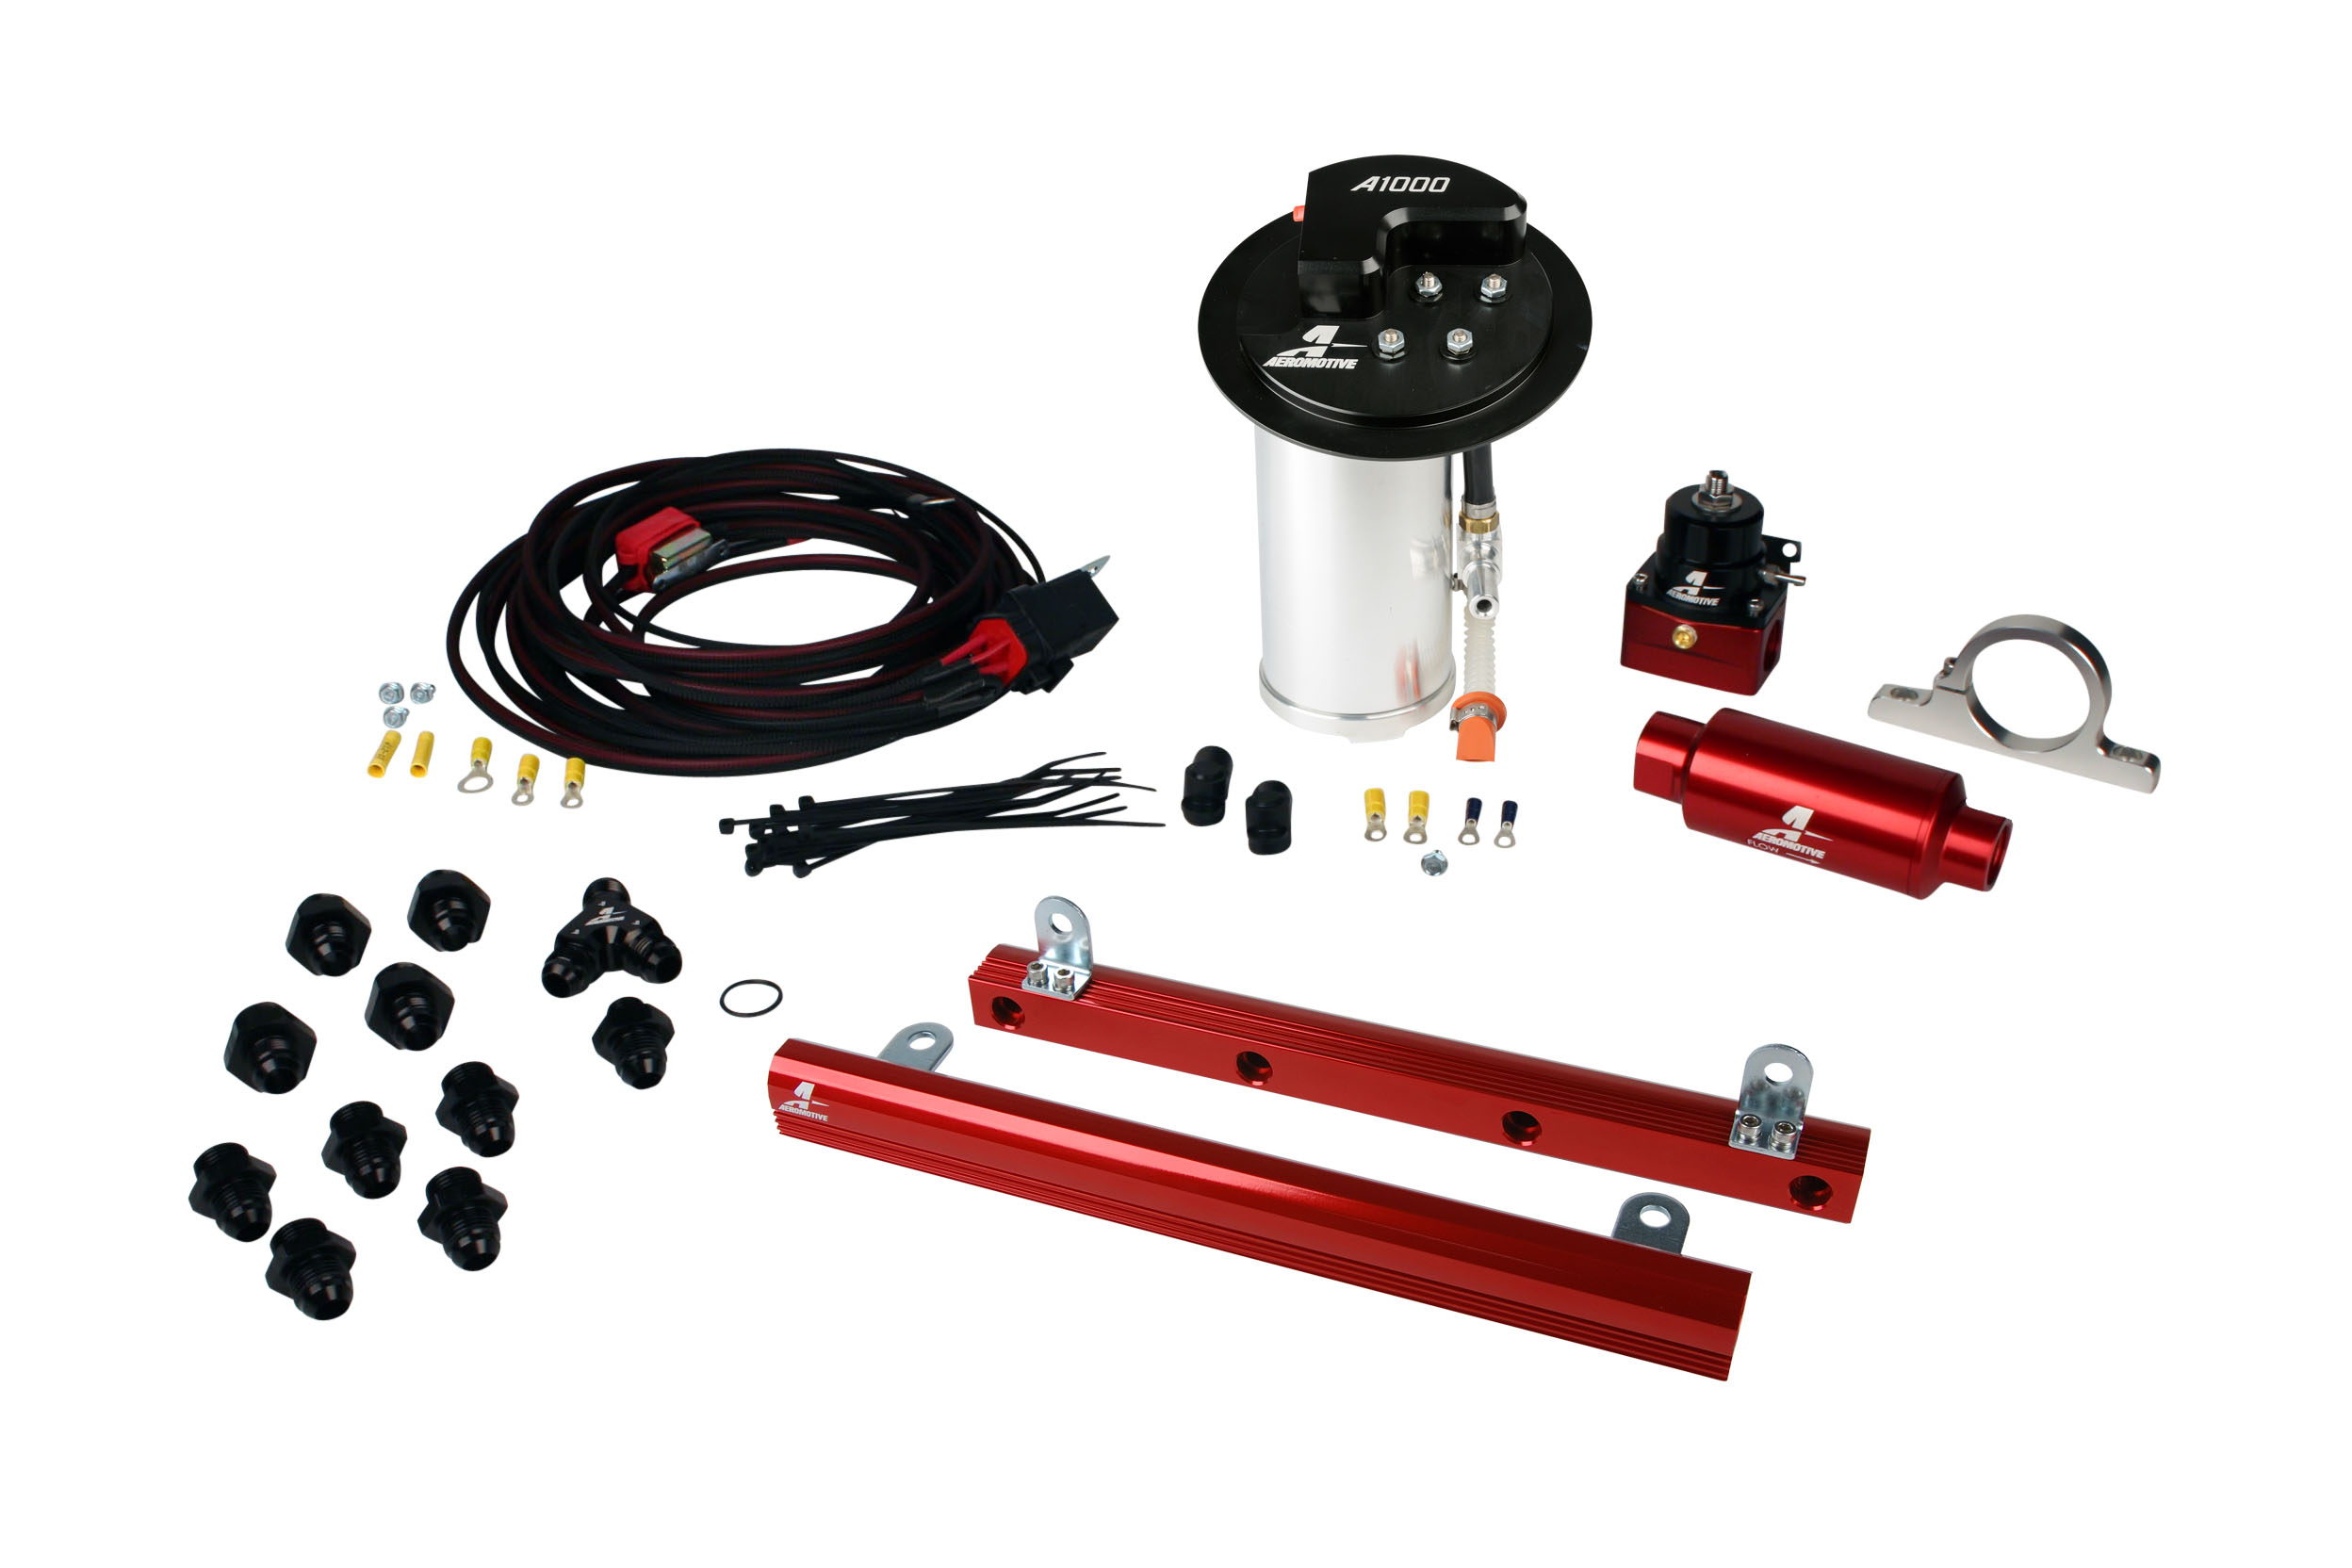 2010-2017 Ford Mustang GT Aeromotive Stealth A1000 Race Fuel System w/5.4L GT500 4 Valve Fuel Rail